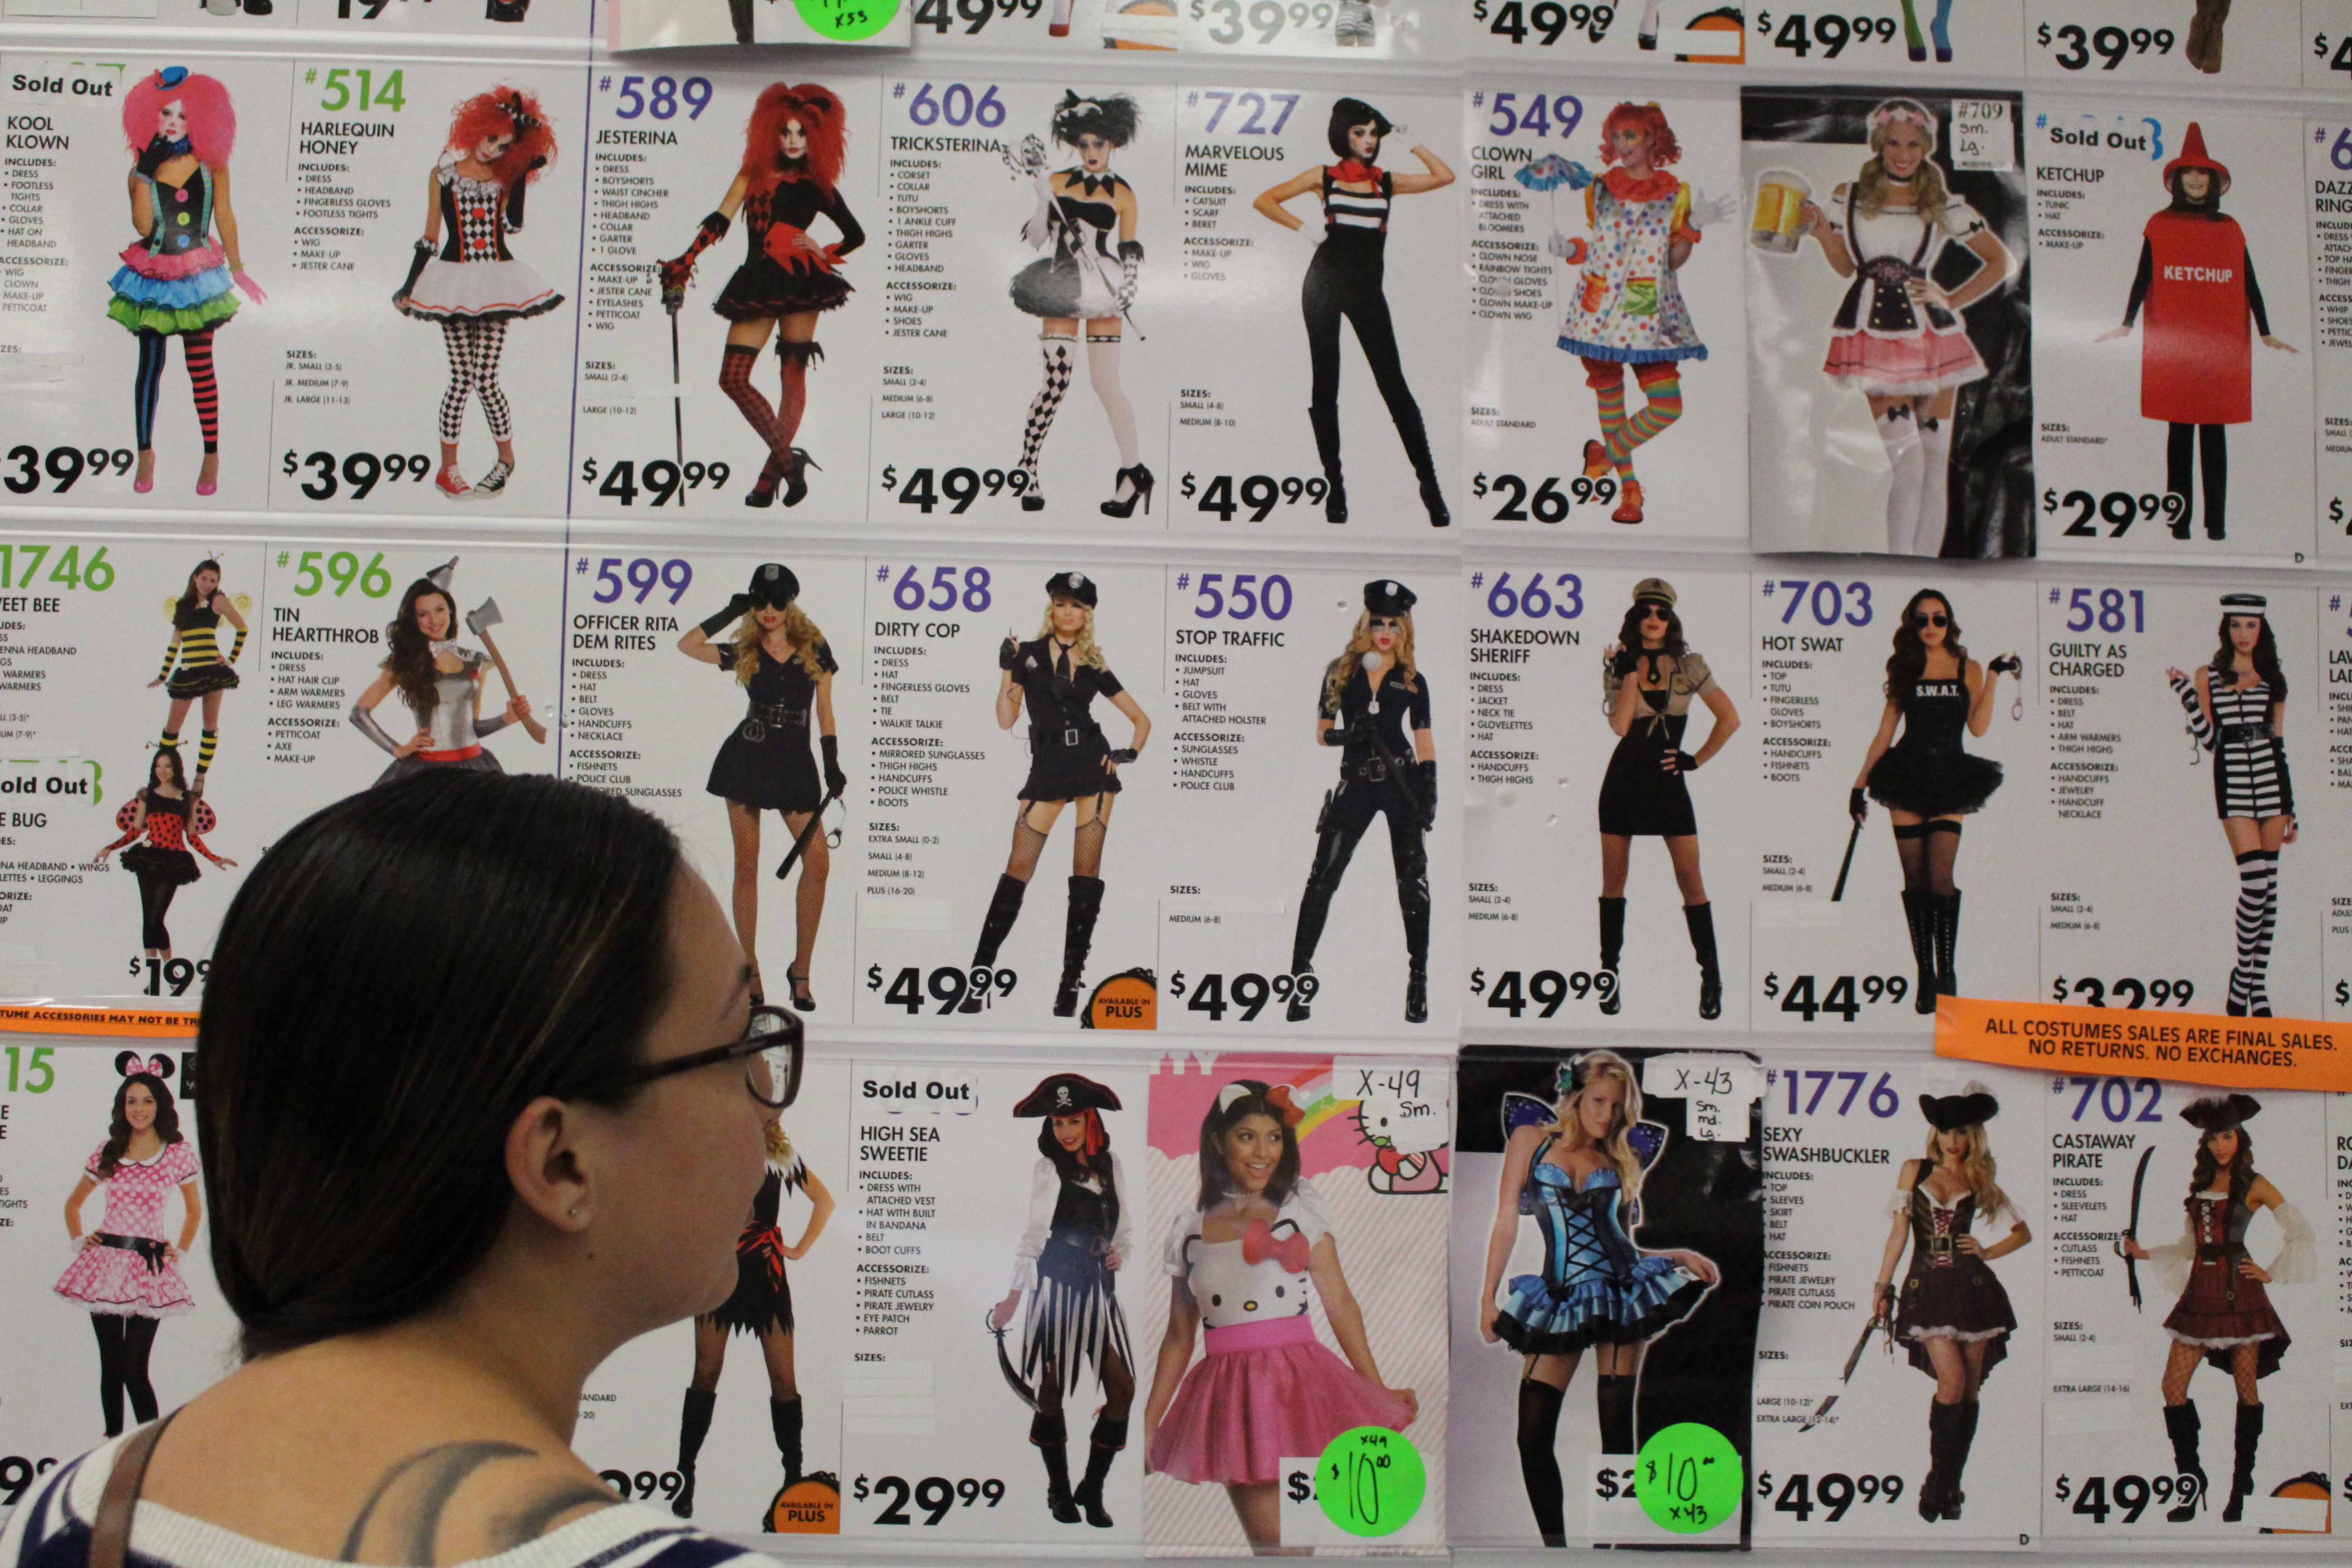 A student observes prices for women's Halloween costumes.